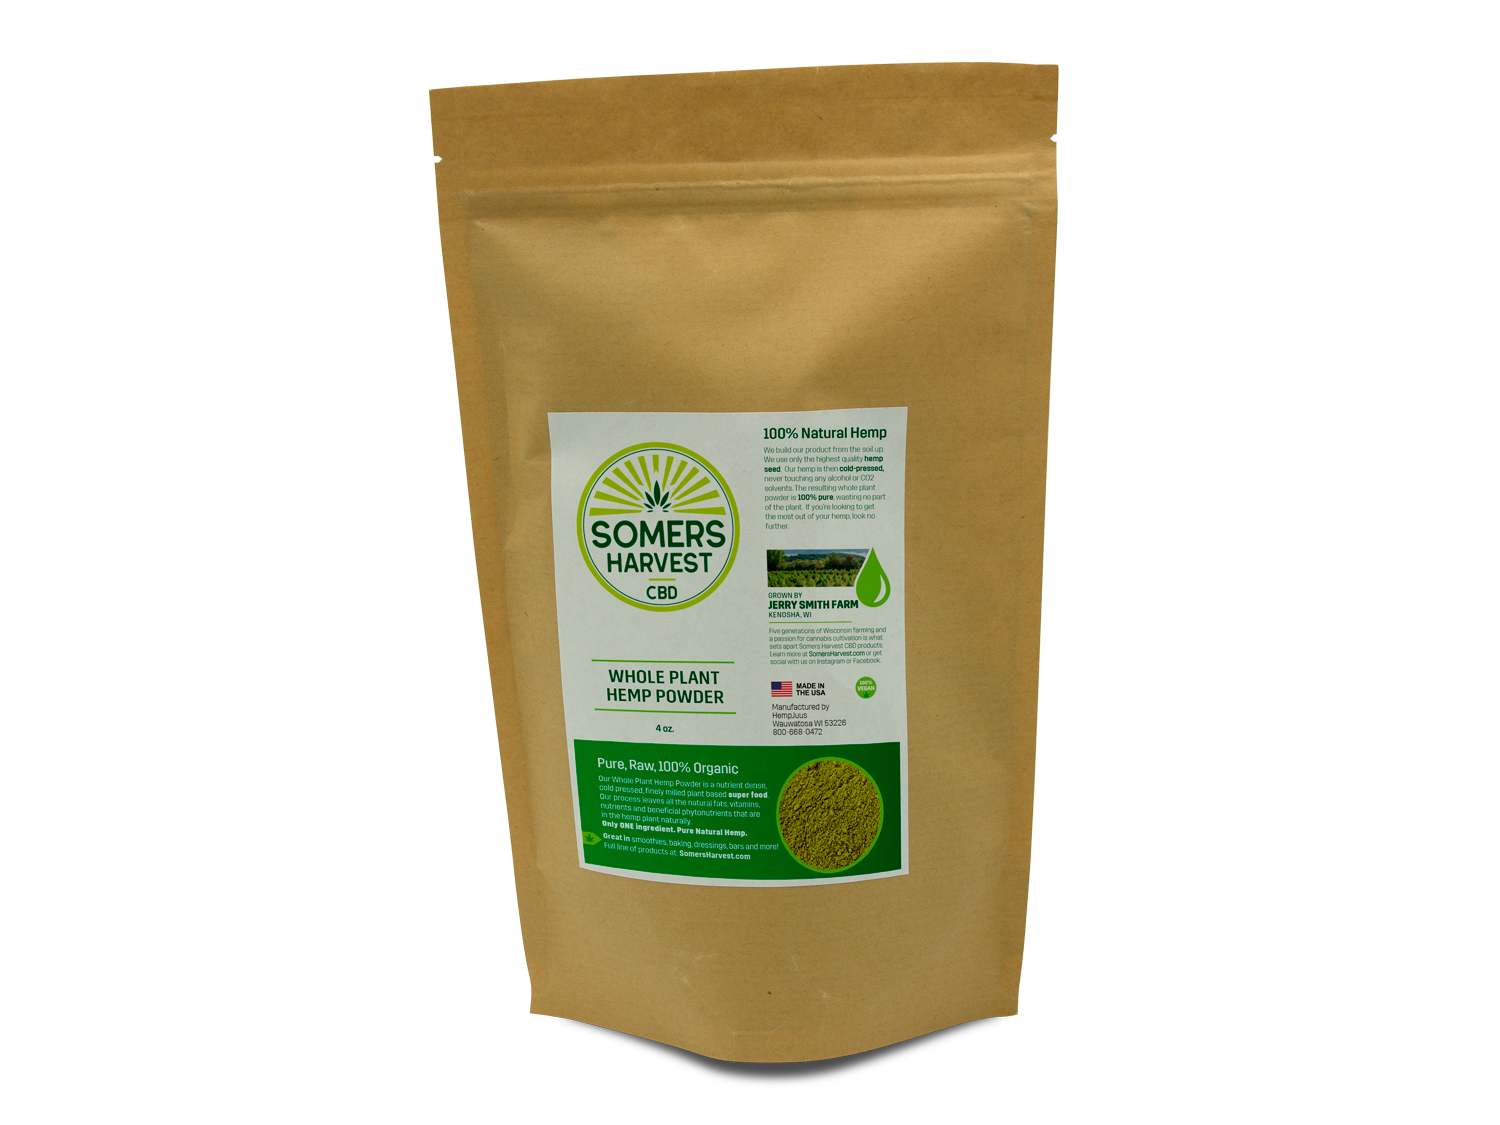 Somers Harvest Whole Plant Hemp Powder